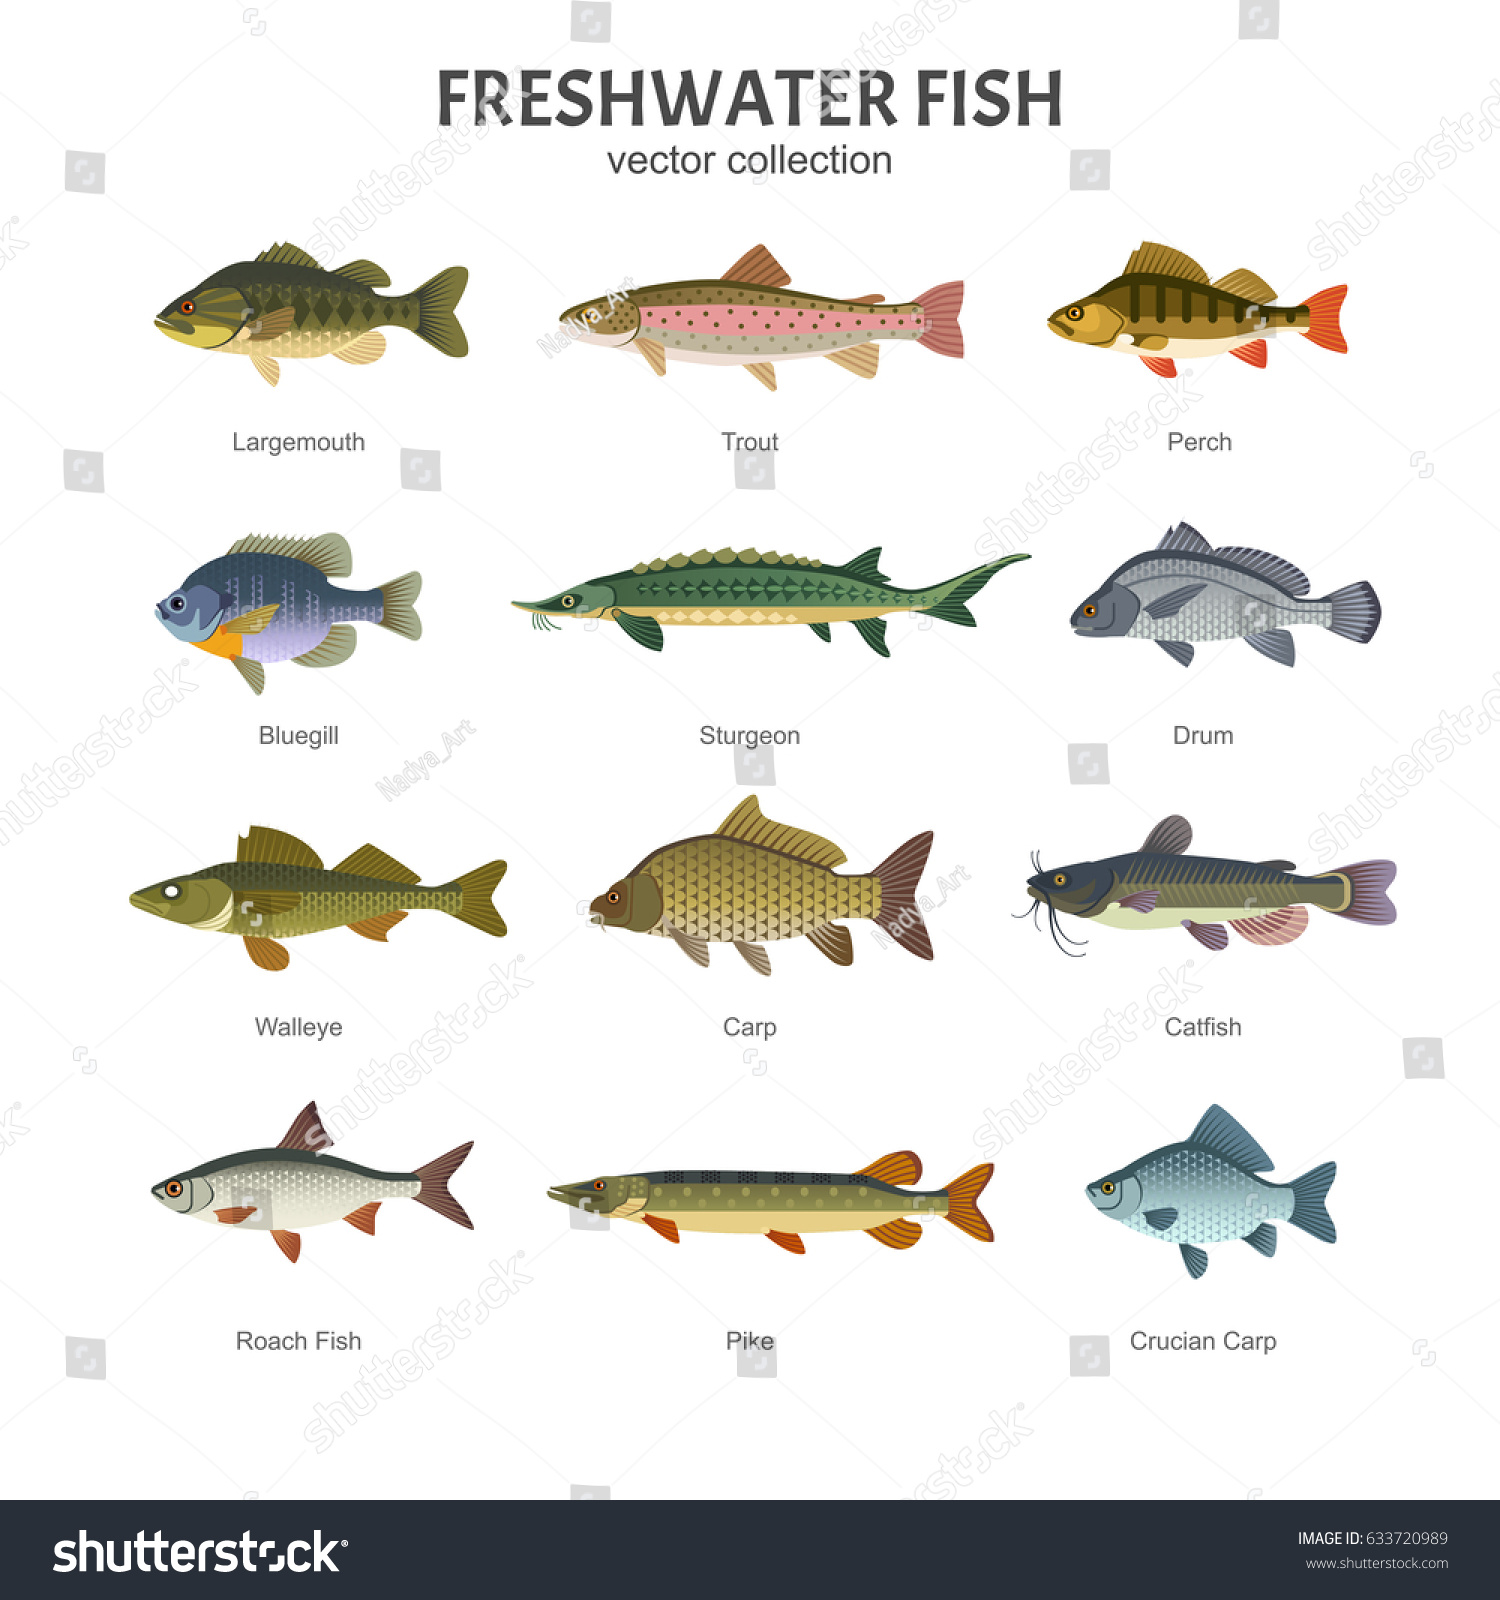 Freshwater fish set vector illustration different stock for Fish representative species